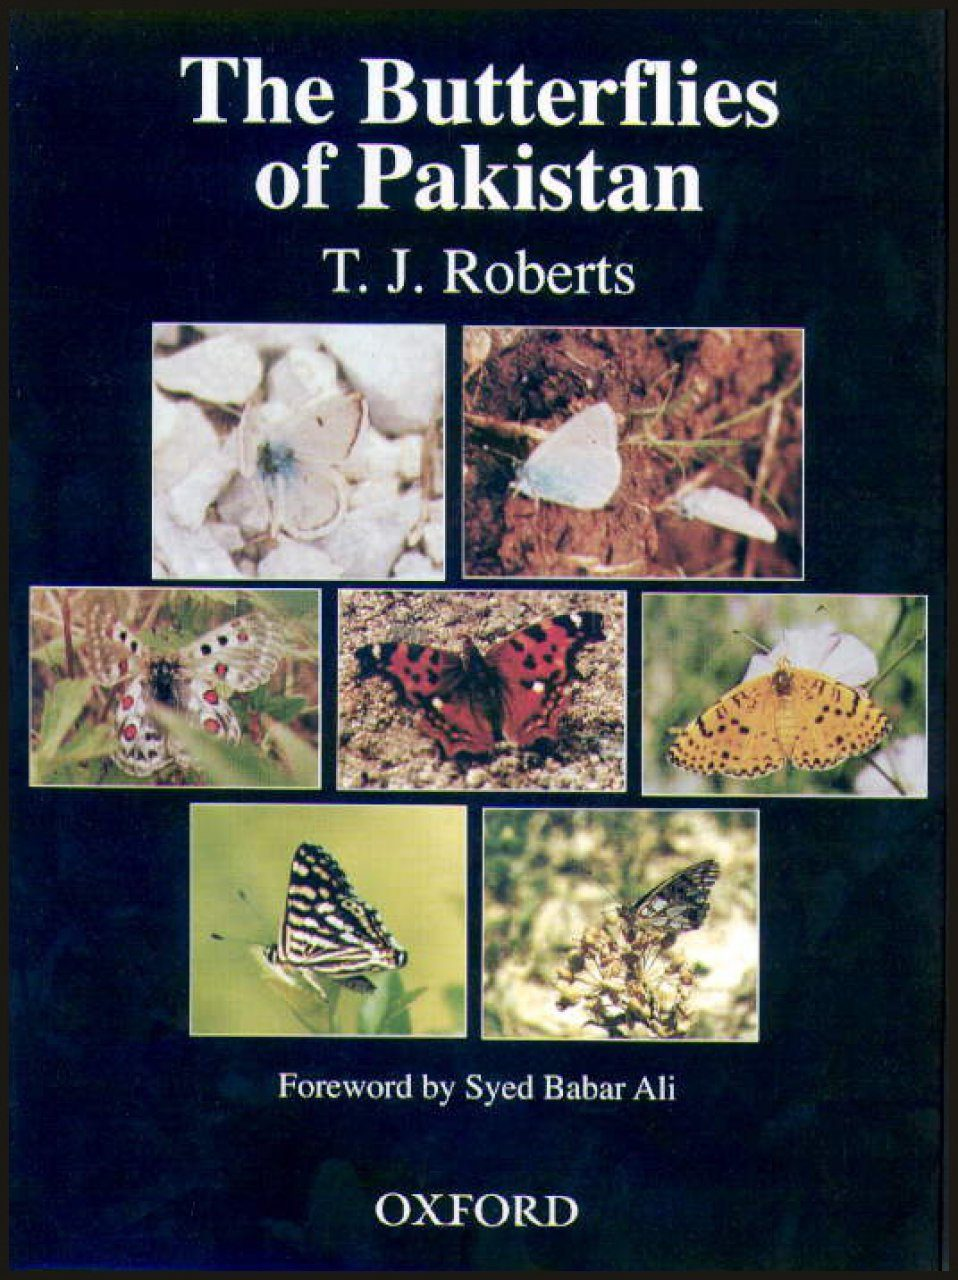 The Butterflies of Pakistan